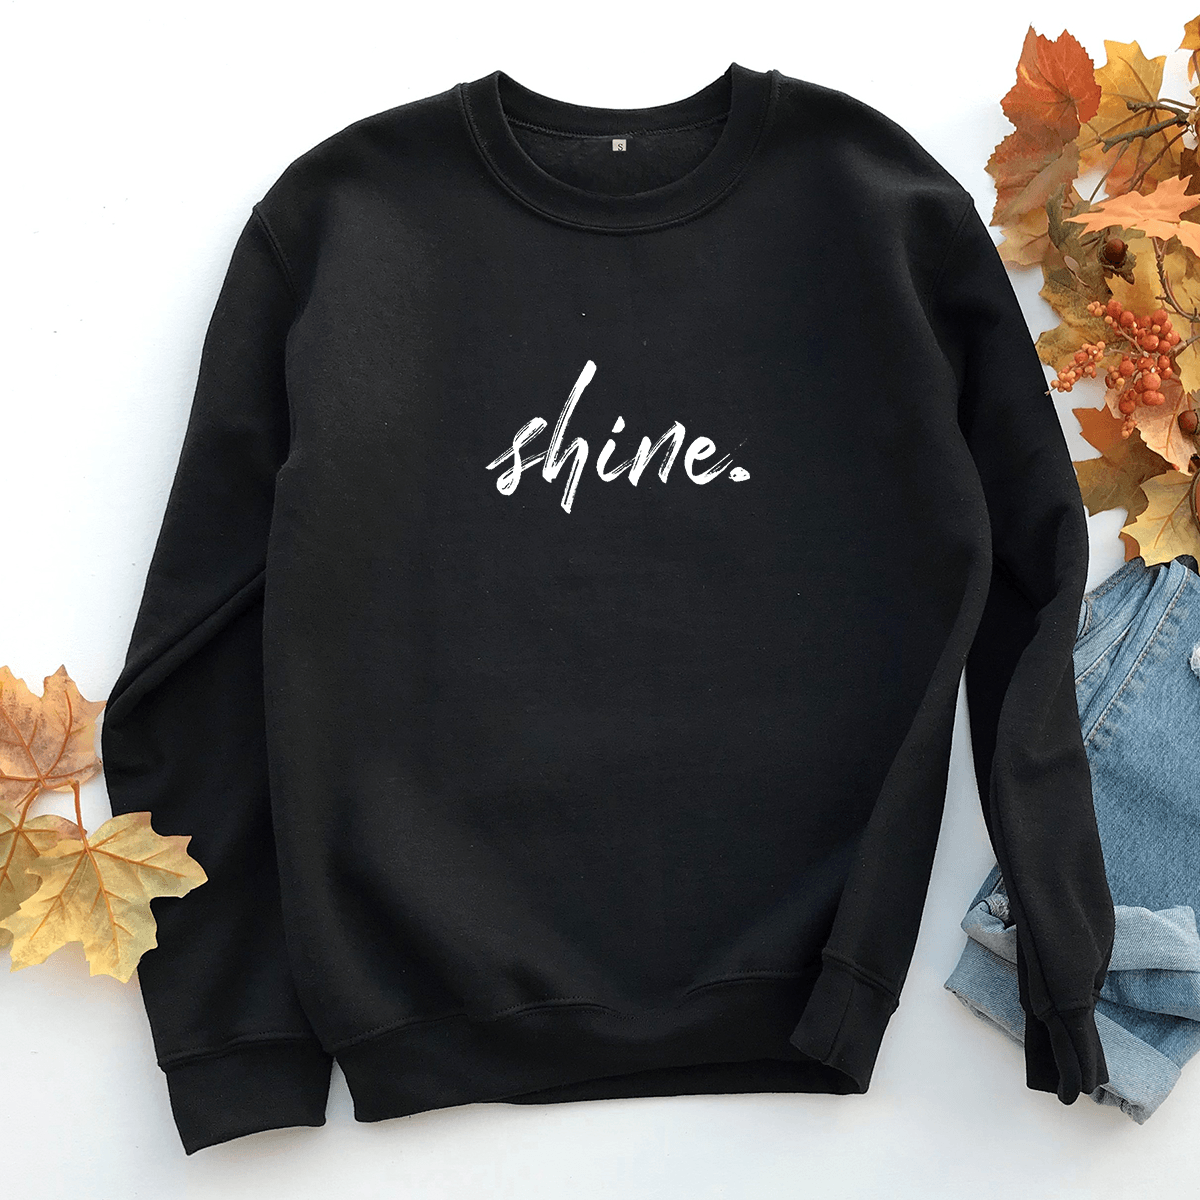 Shine - Sweatshirt